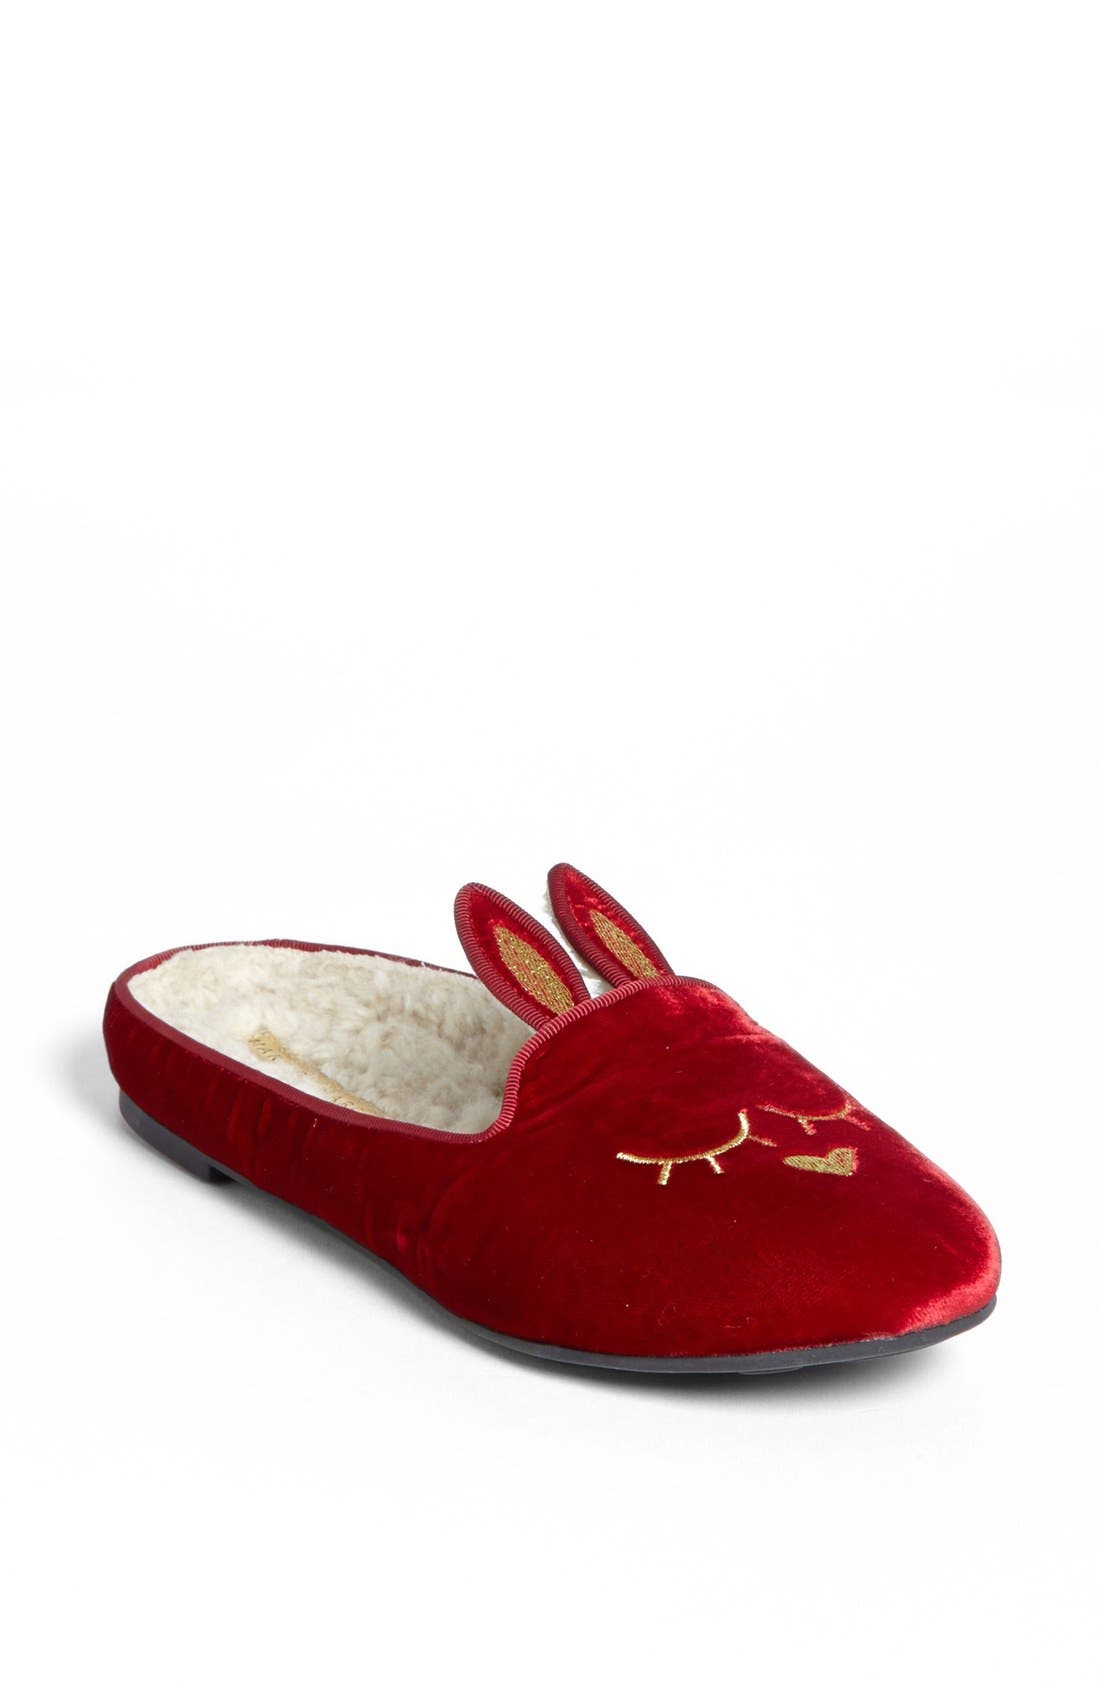 Main Image - MARC BY MARC JACOBS 'Sleeping Bunny' Slipper